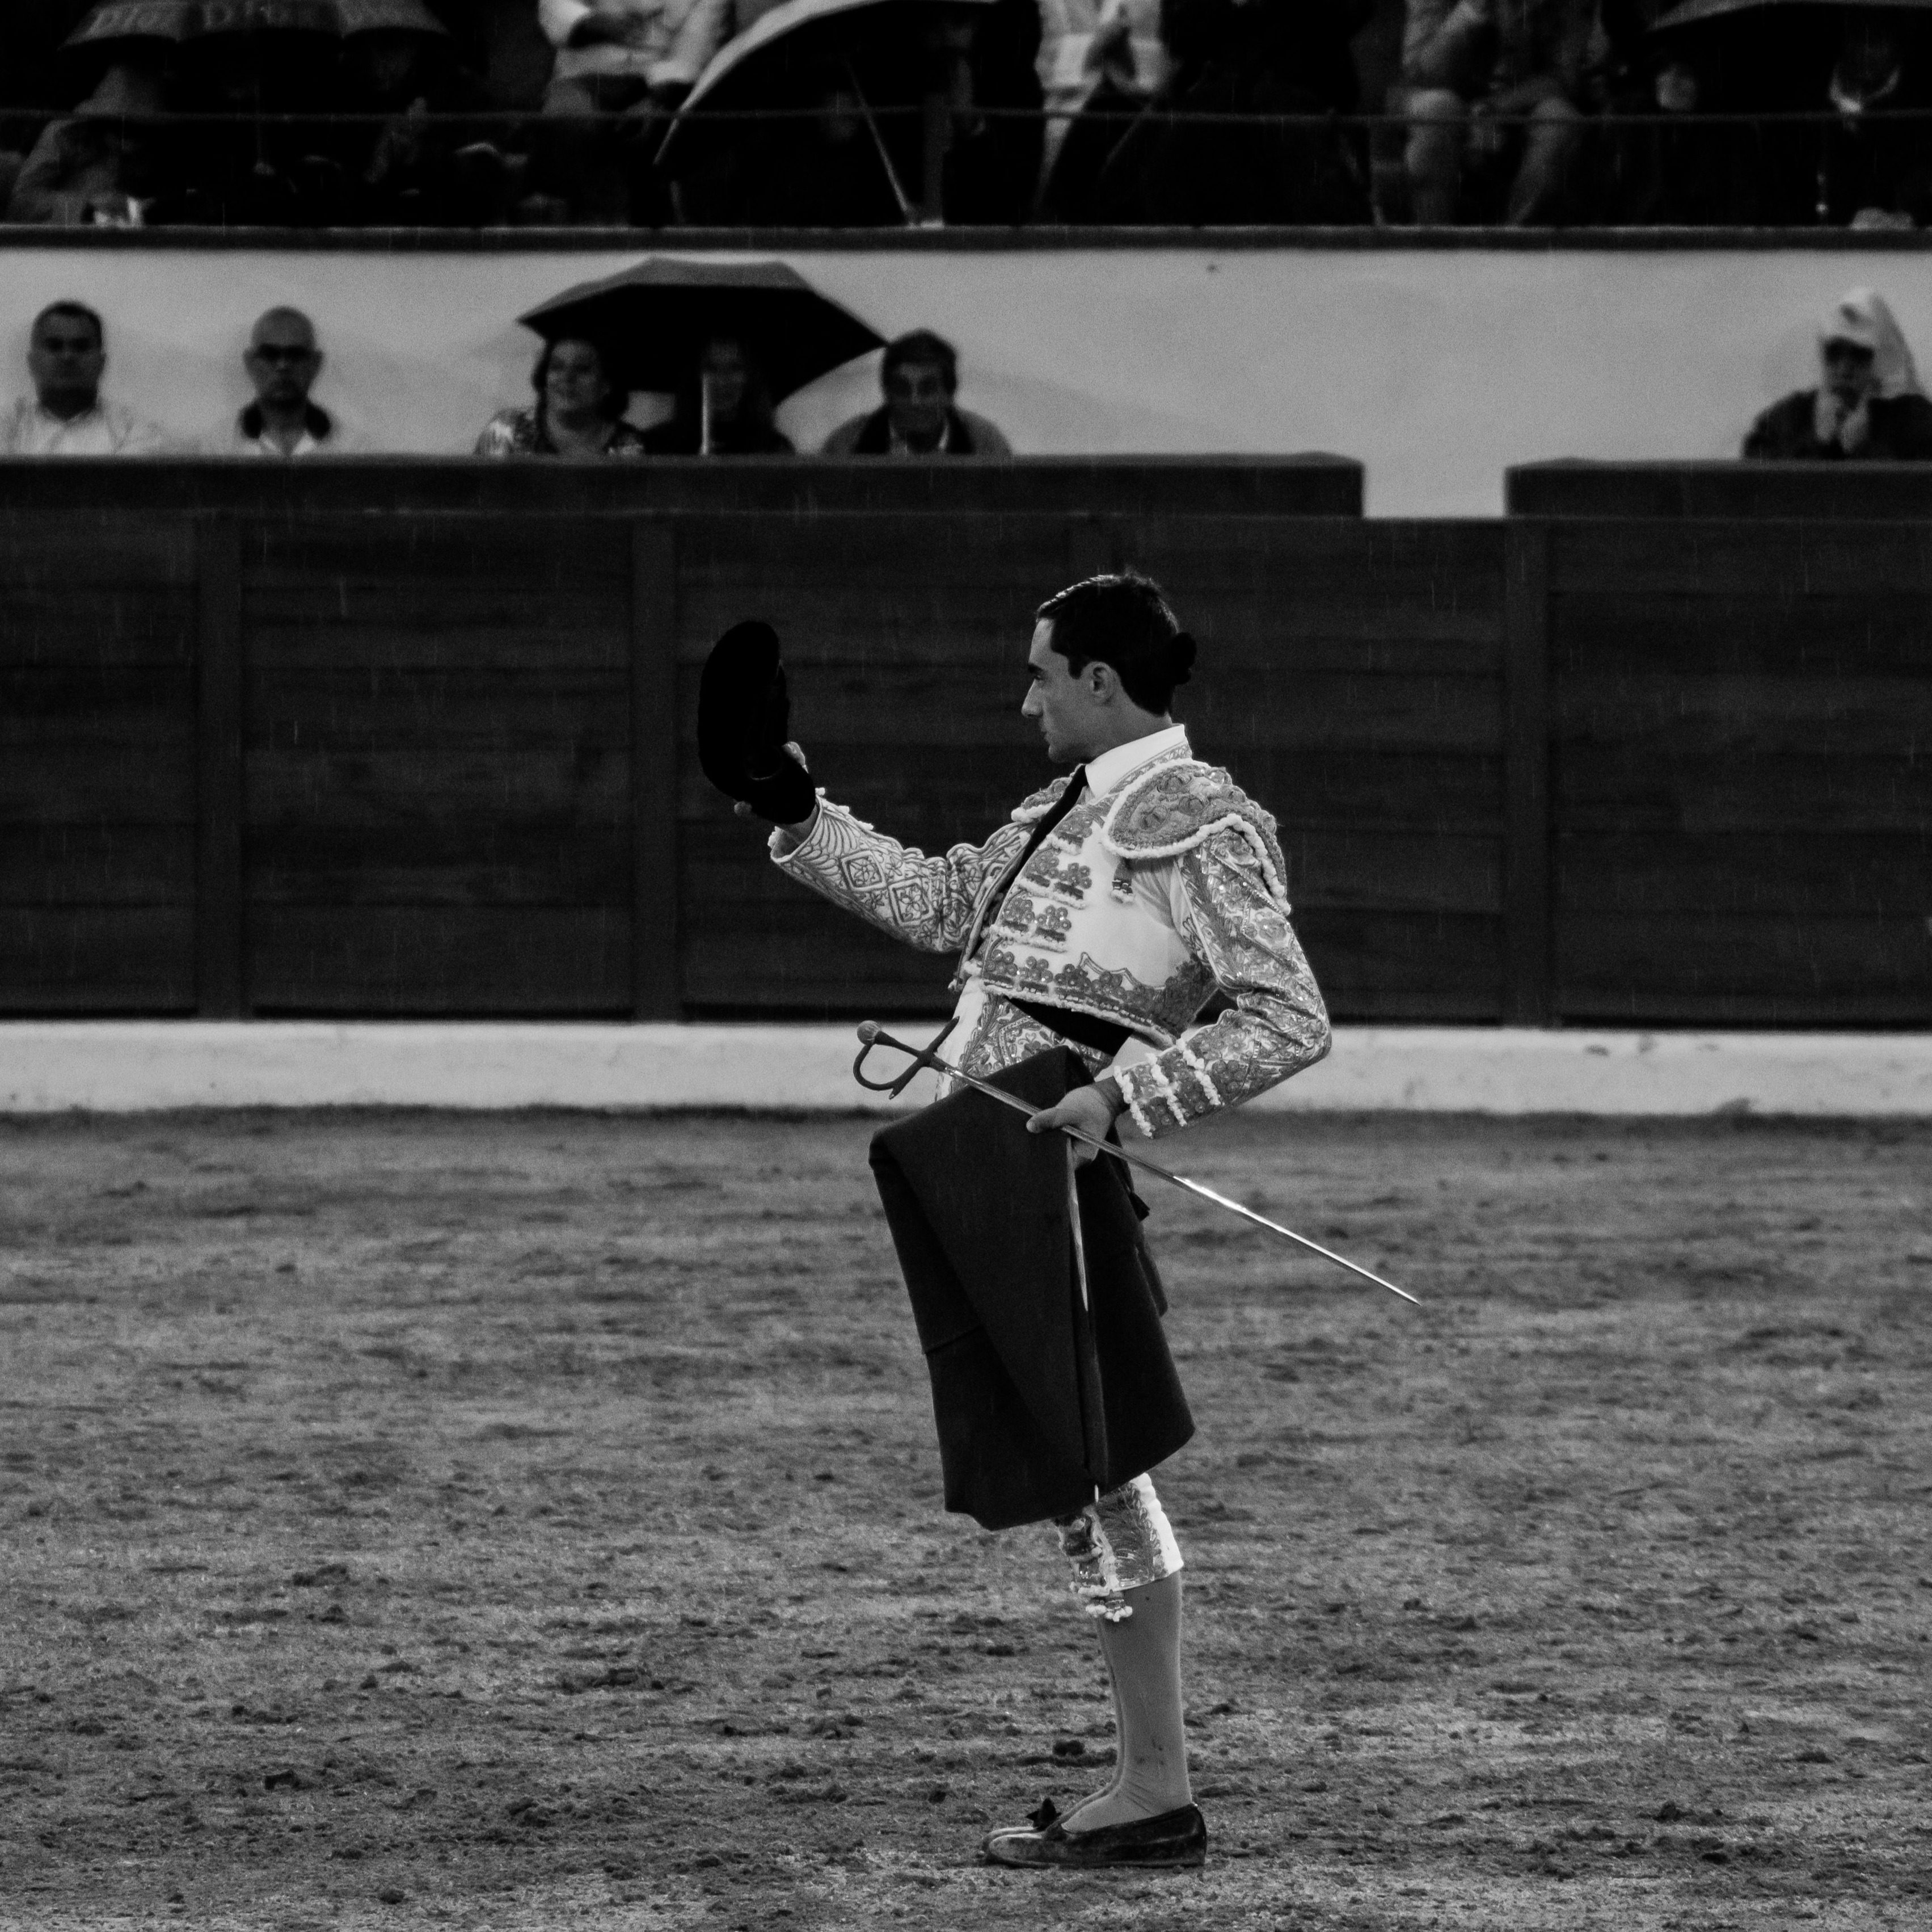 Bullfighting is an important part of the Spanish culture